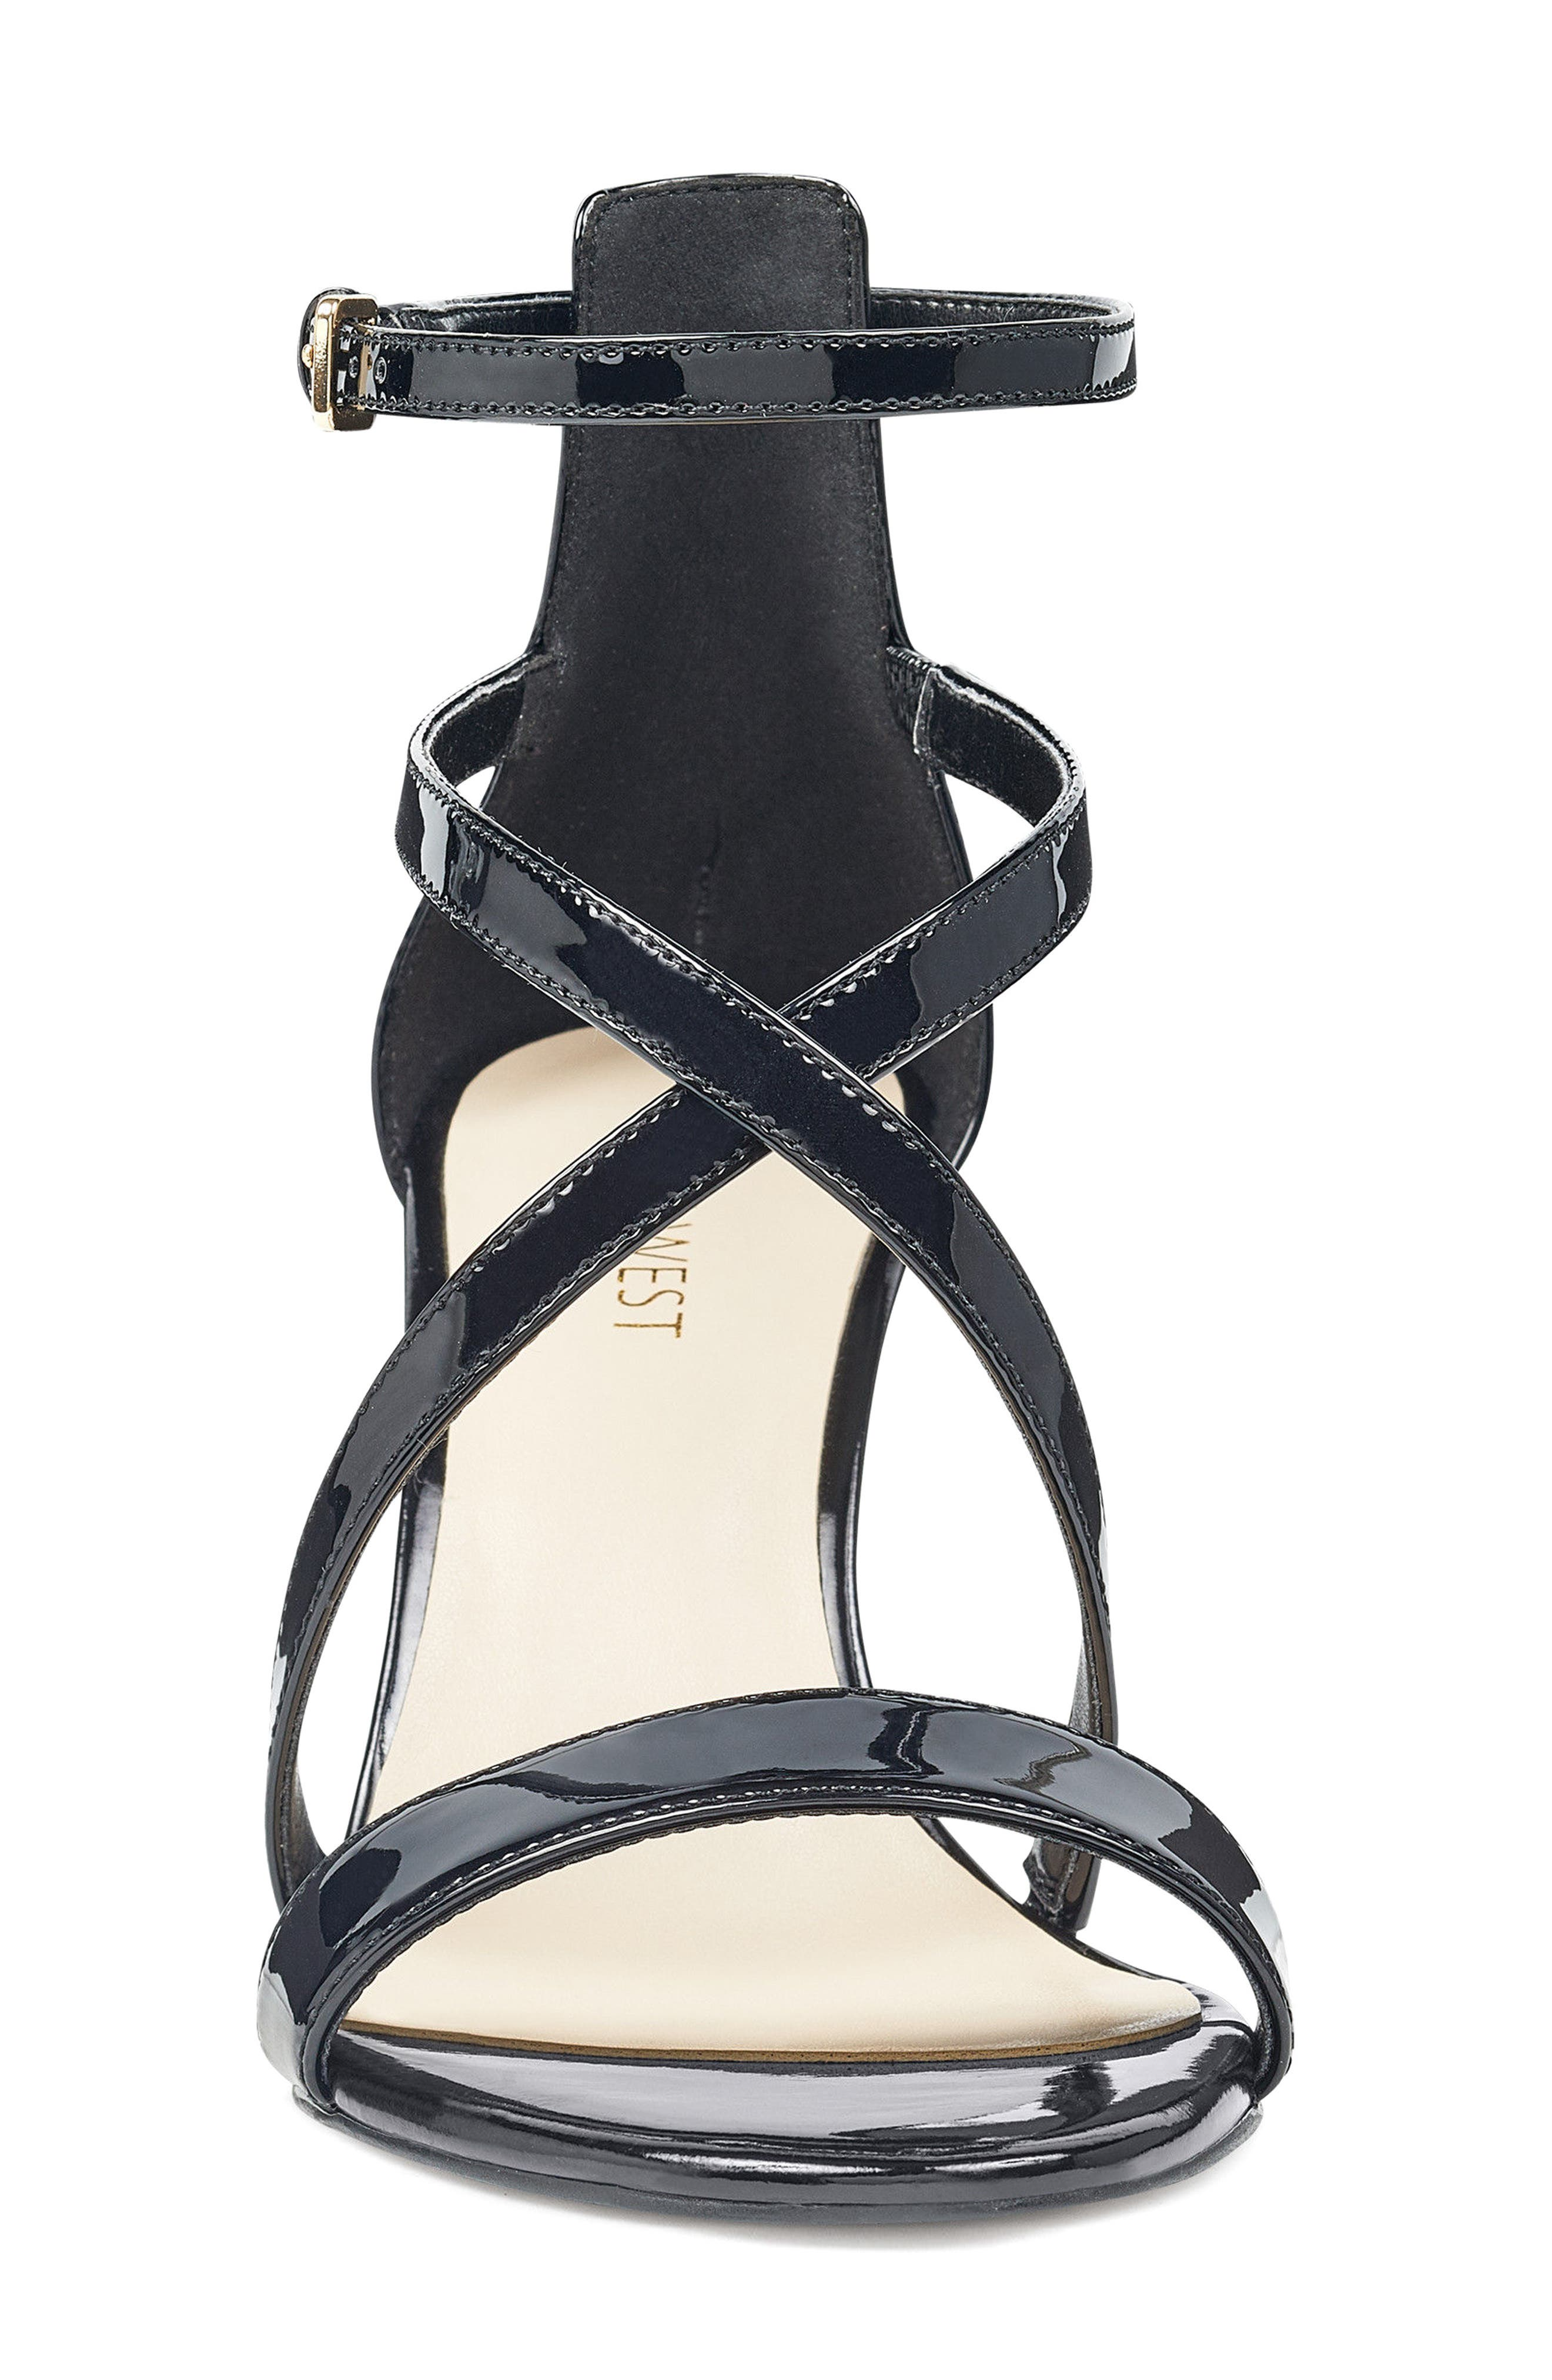 NINE WEST,                             Retail Therapy Strappy Sandal,                             Alternate thumbnail 4, color,                             001